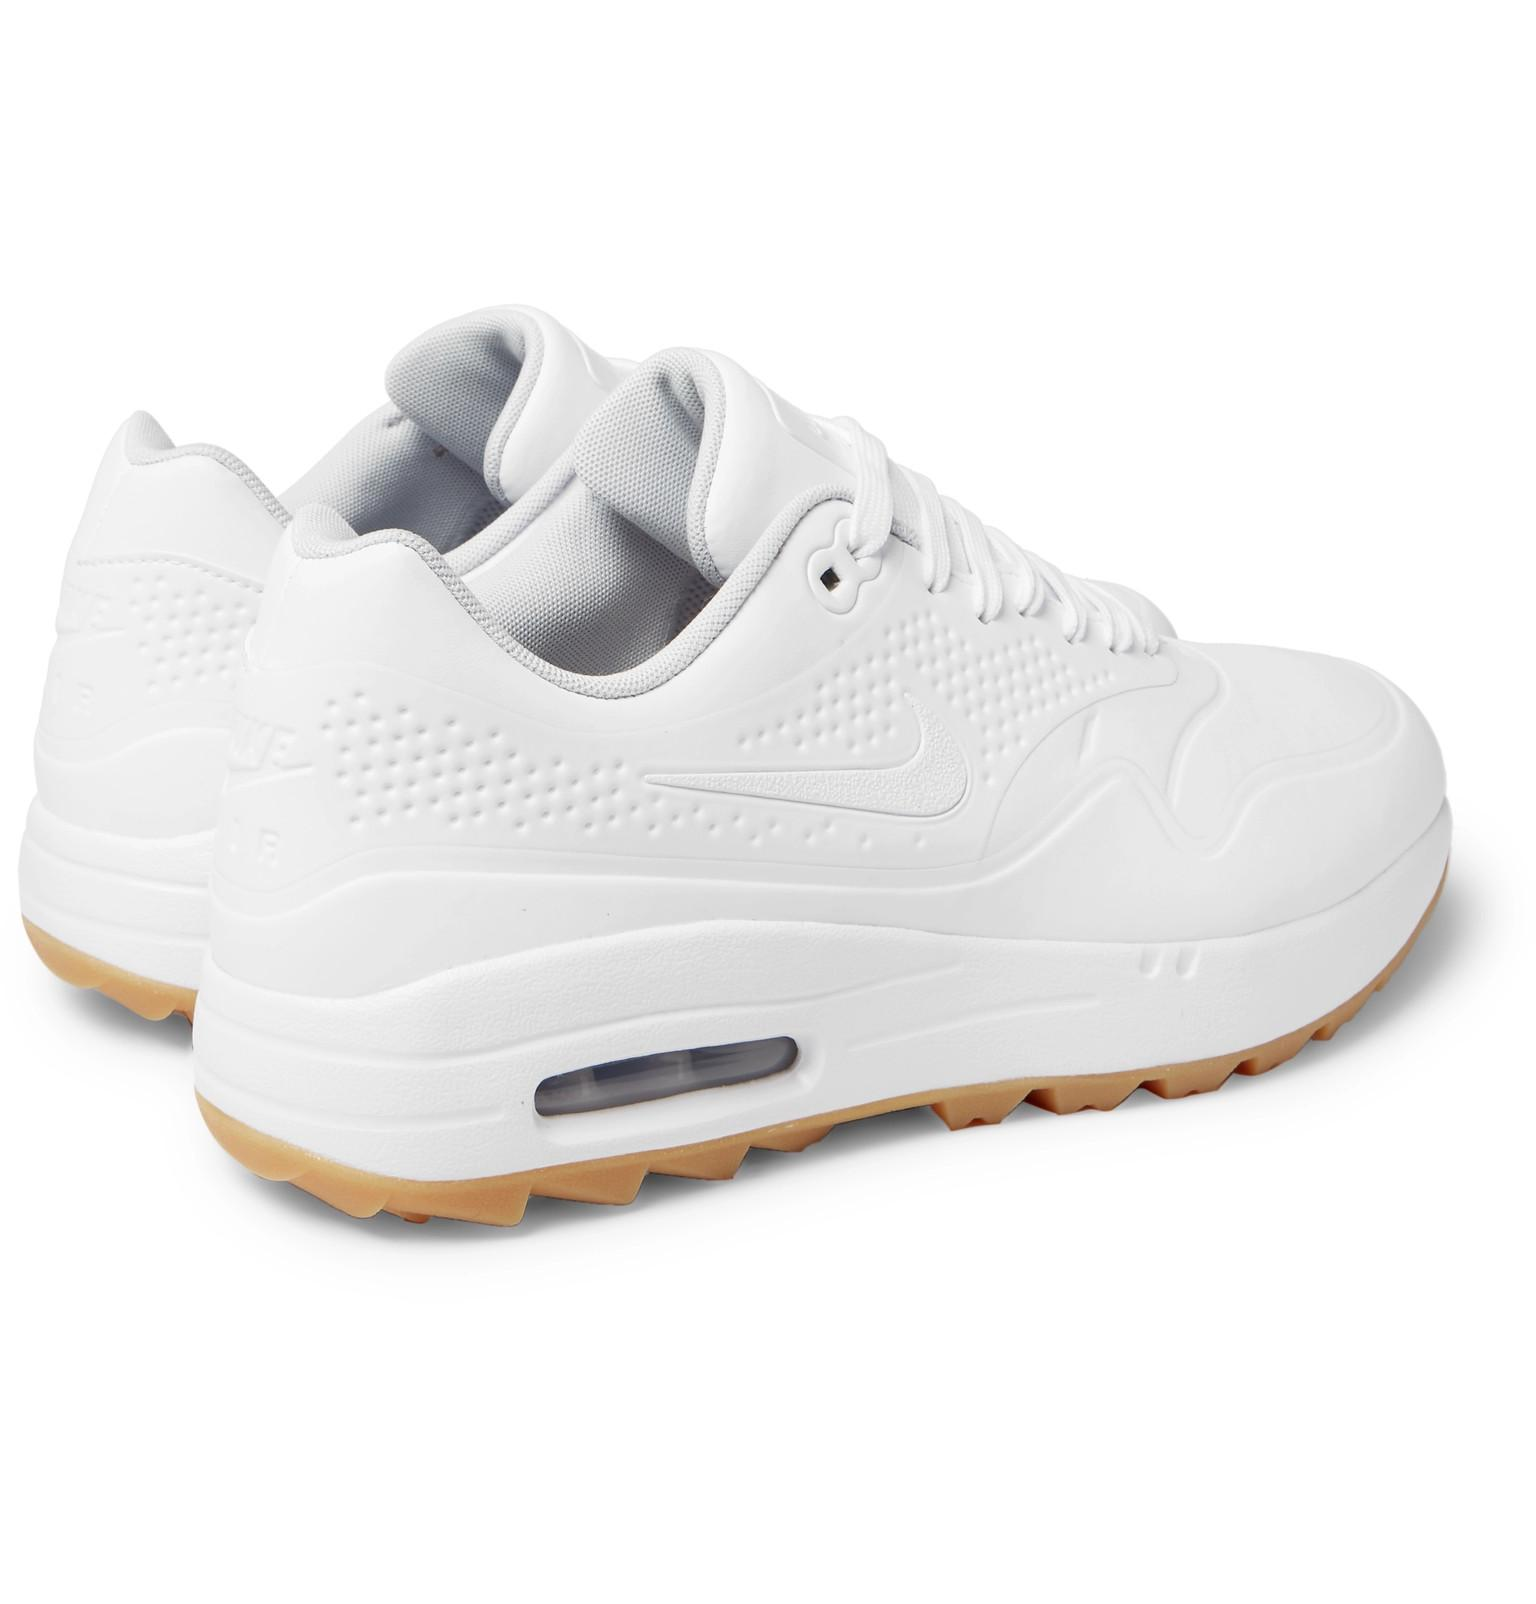 uk availability be38d 9d94c Nike - White Air Max 1g Coated Mesh Golf Shoes for Men - Lyst. View  fullscreen